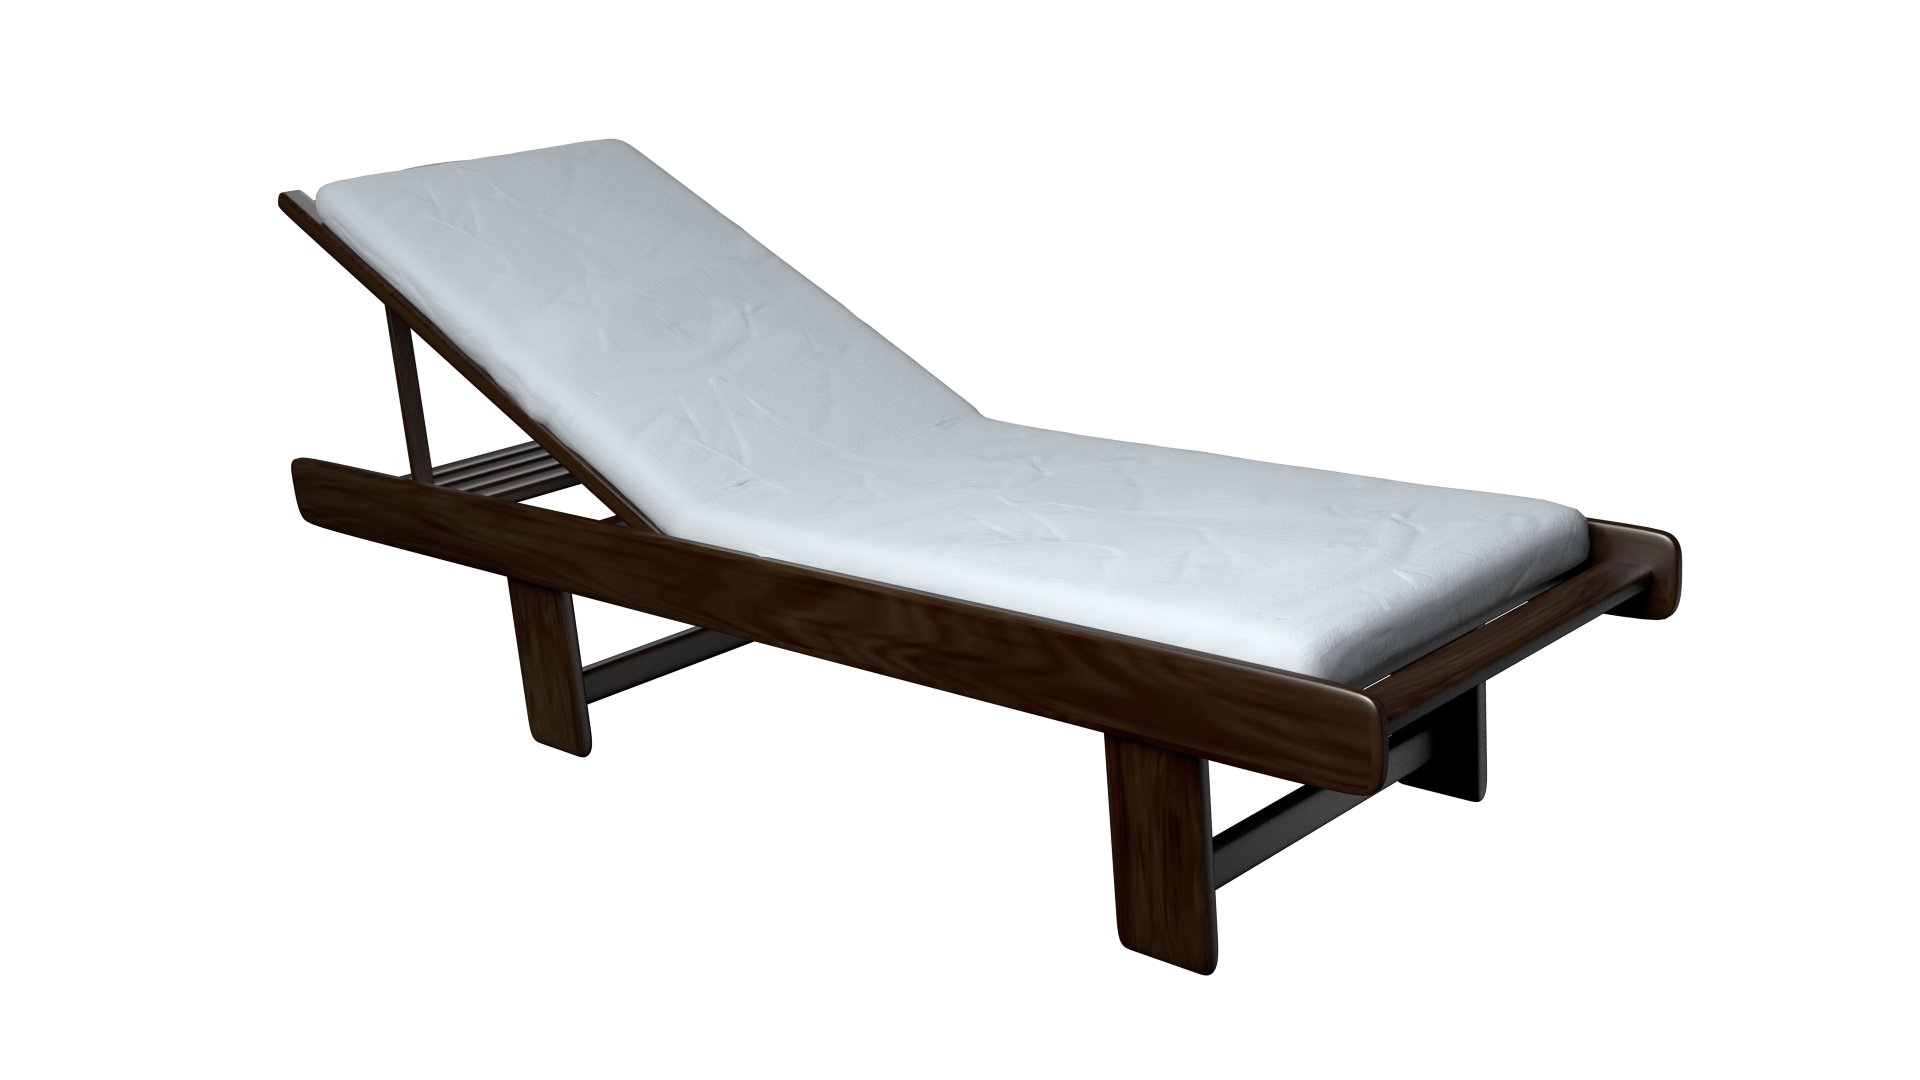 Beach lounge chair png - Description Comments 0 Beach Chair 3d Model Realistic Beach Chair